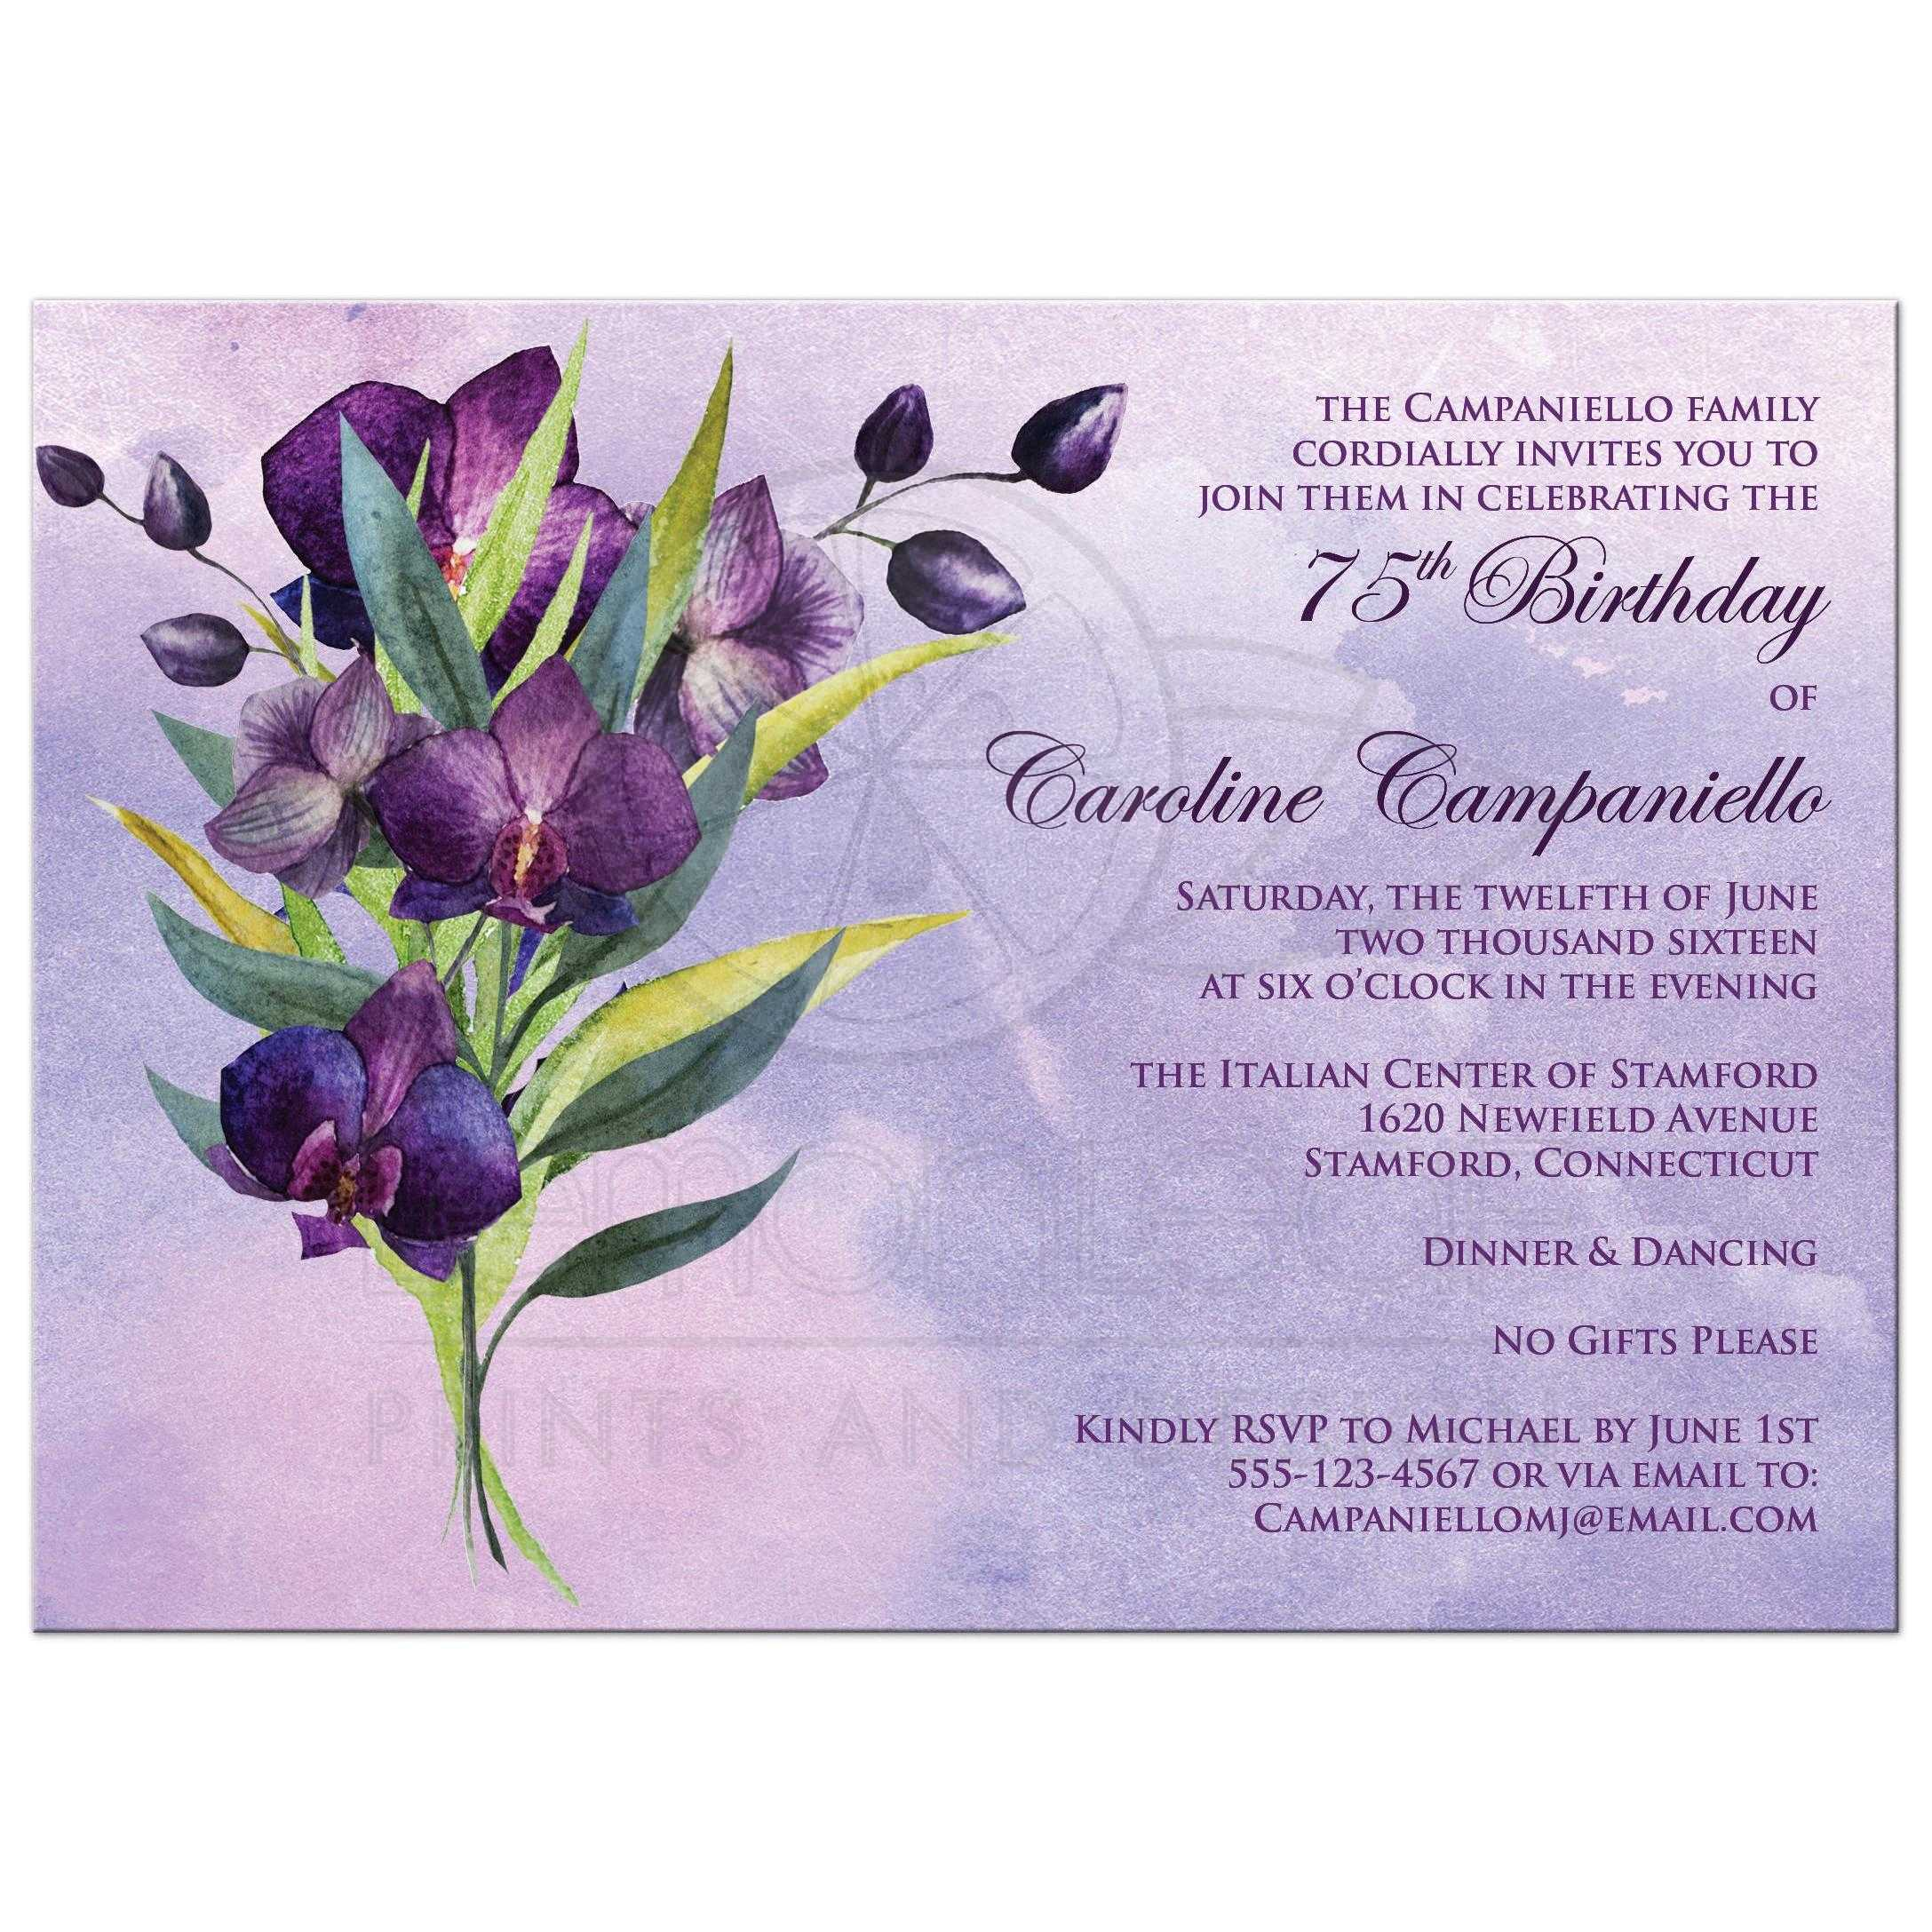 75th Birthday Party Invitation | Purple Orchids, Green Foliage ...